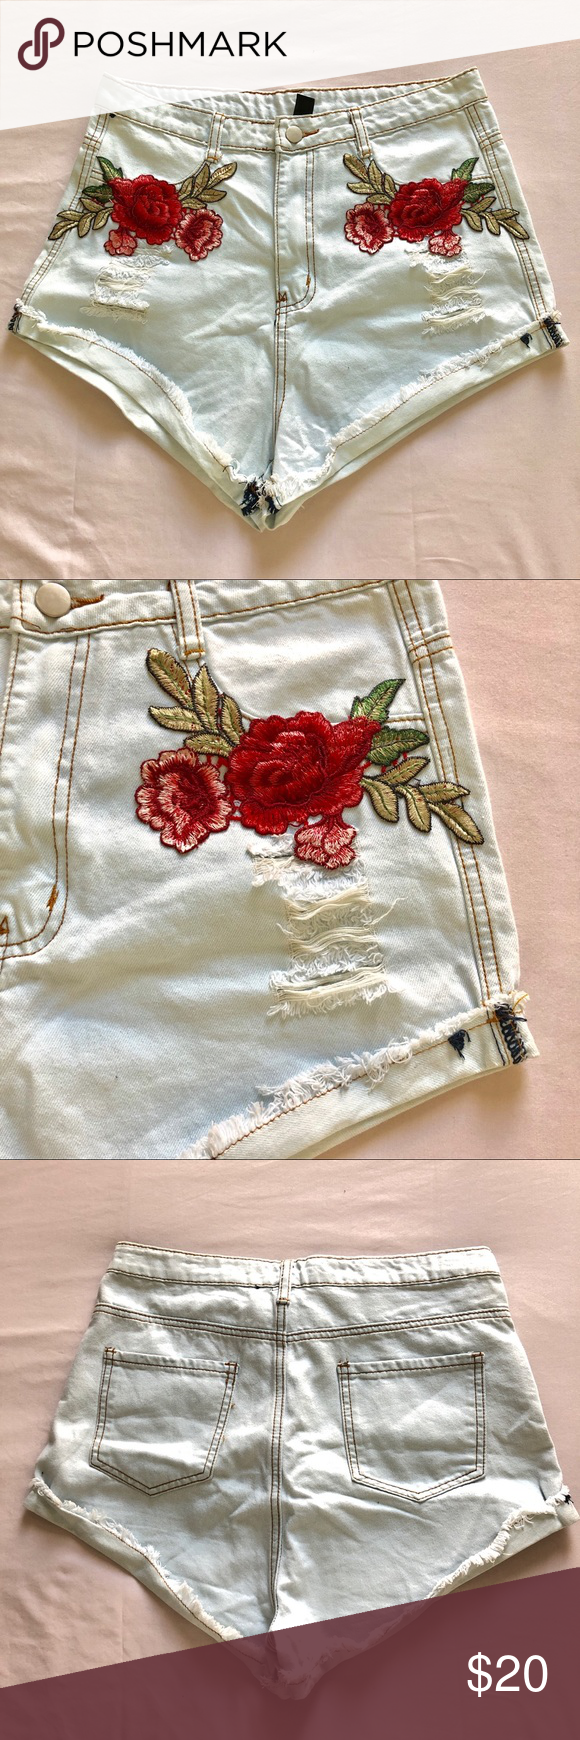 White washed very light blue denim shorts New without tags light washed blue shorts with red embroidered flowers. Has some stretch making them very comfortable Windsor Shorts Jean Shorts #lightblueshorts